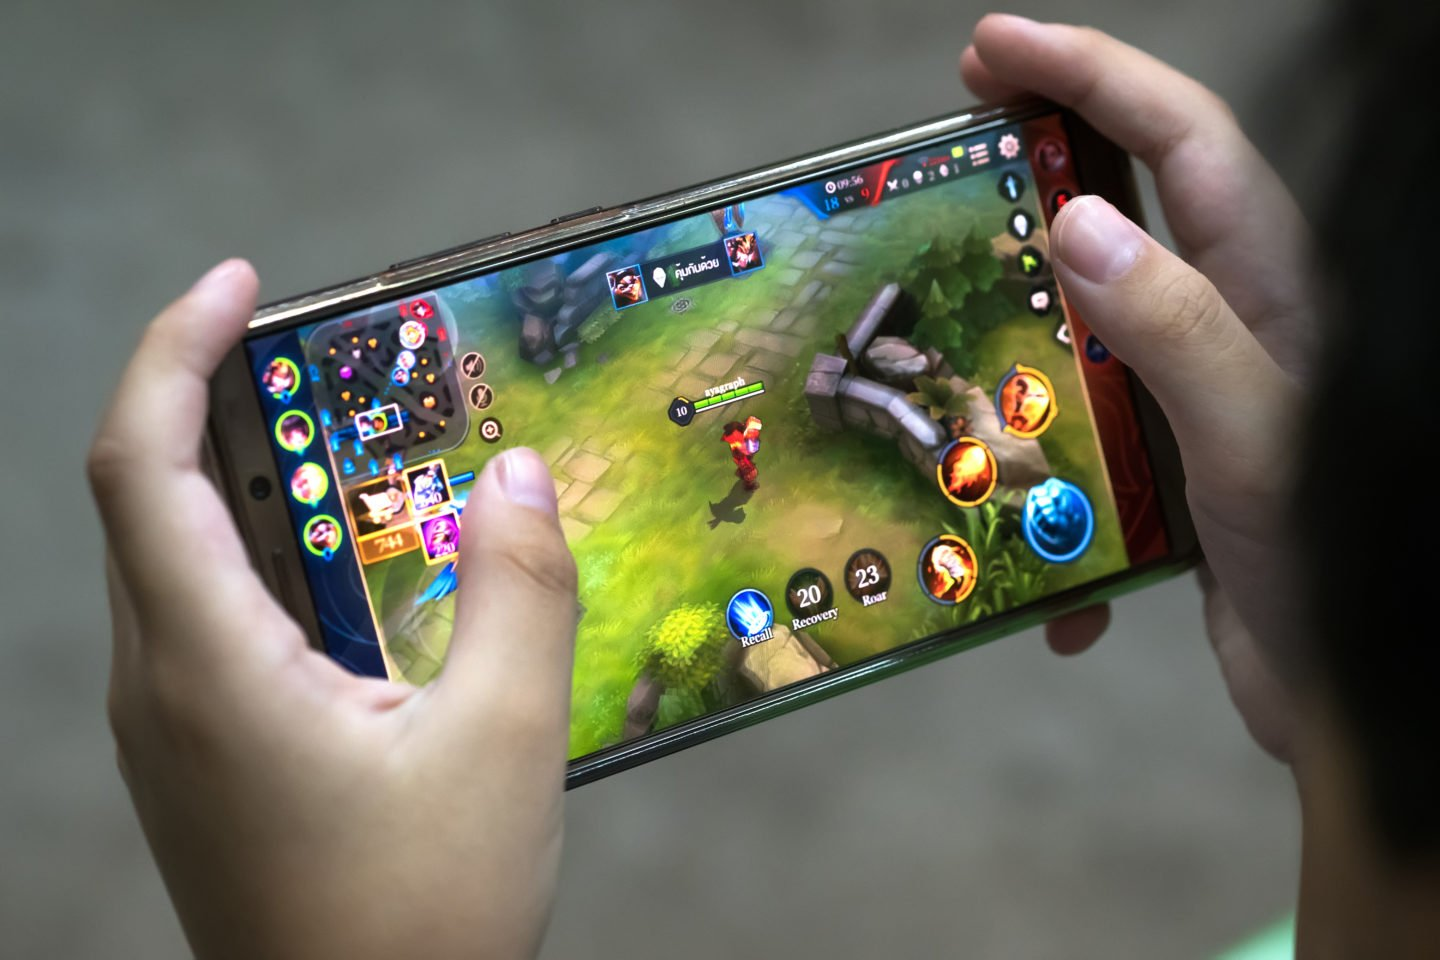 In 2021 mobile eSports will continue to grow